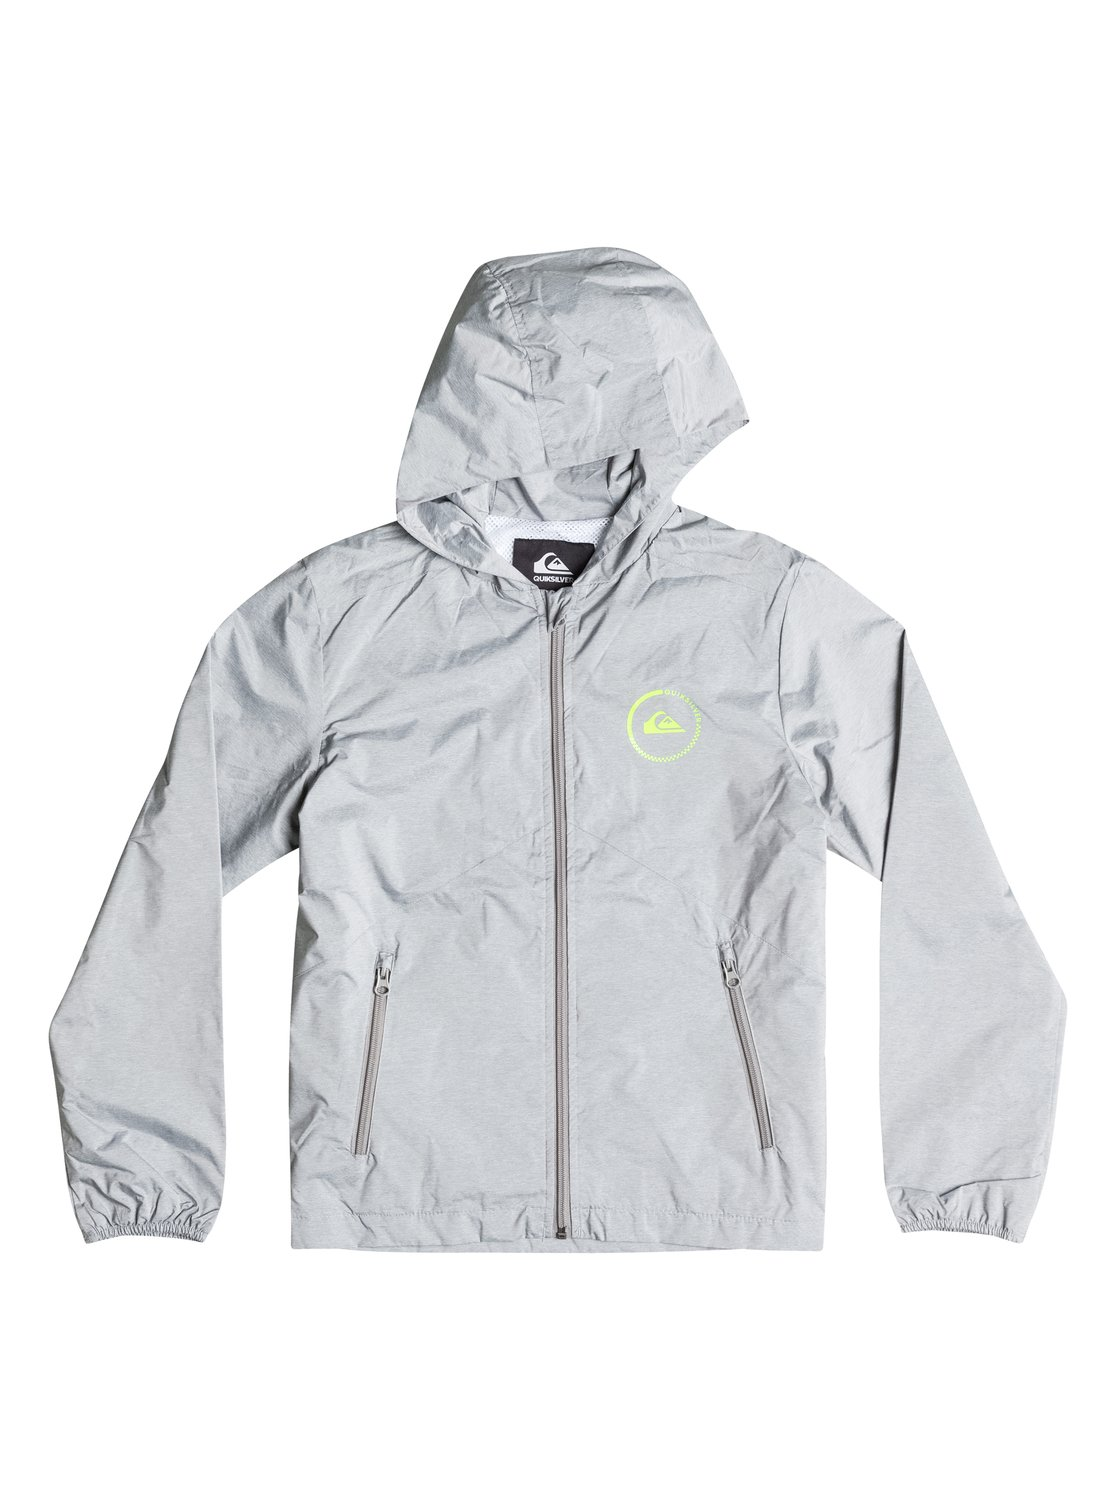 Boy's Everyday Windbreaker от Quiksilver